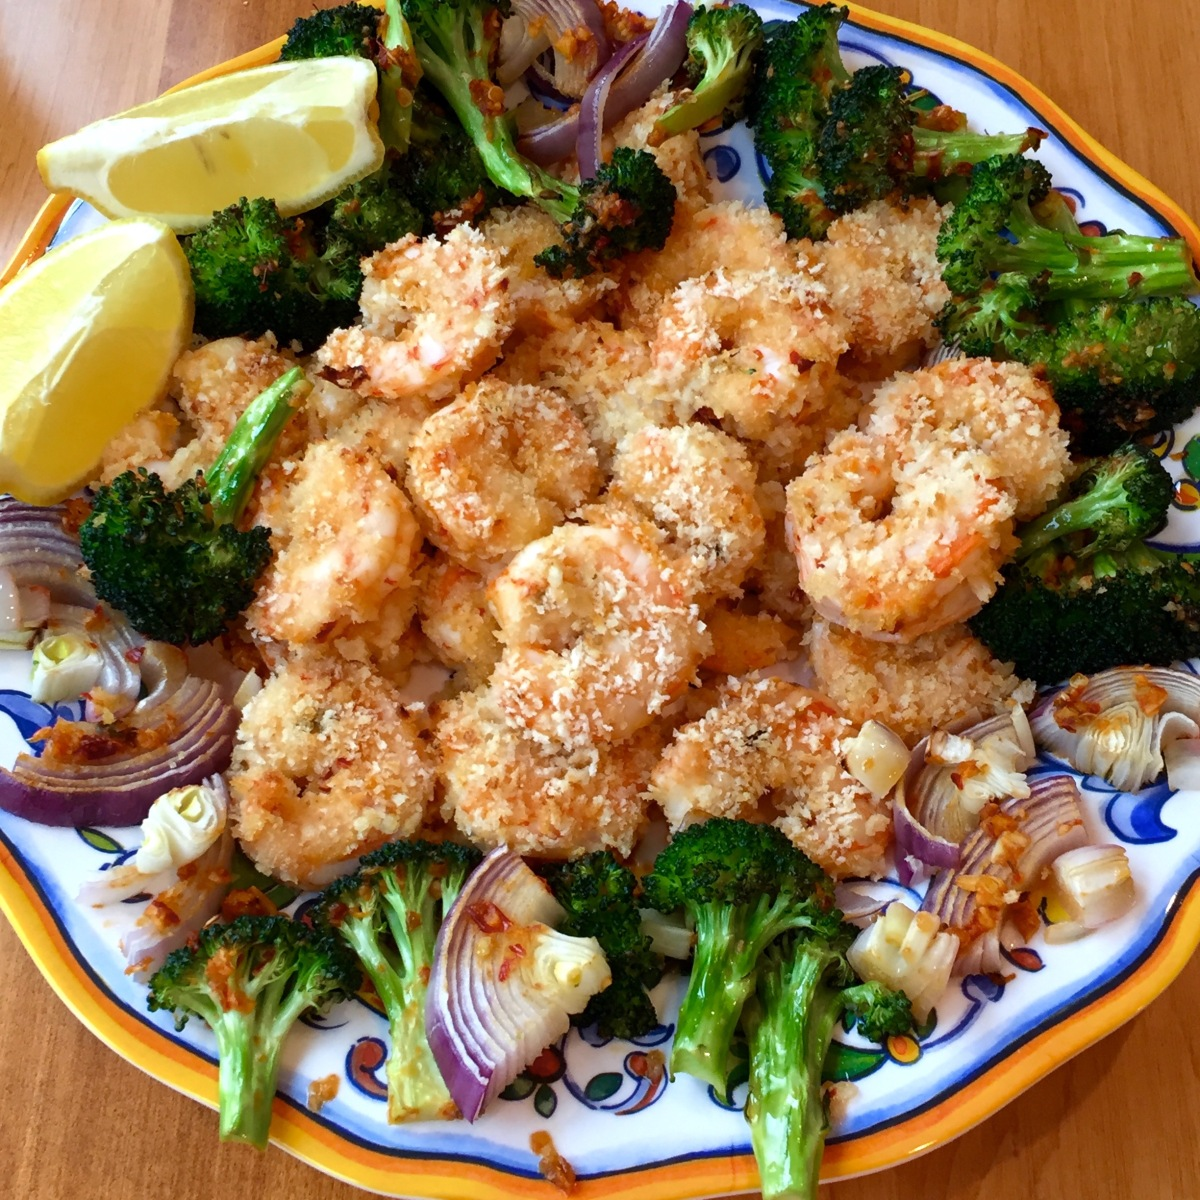 Spicy Sheet Pan Shrimp With Broccoli